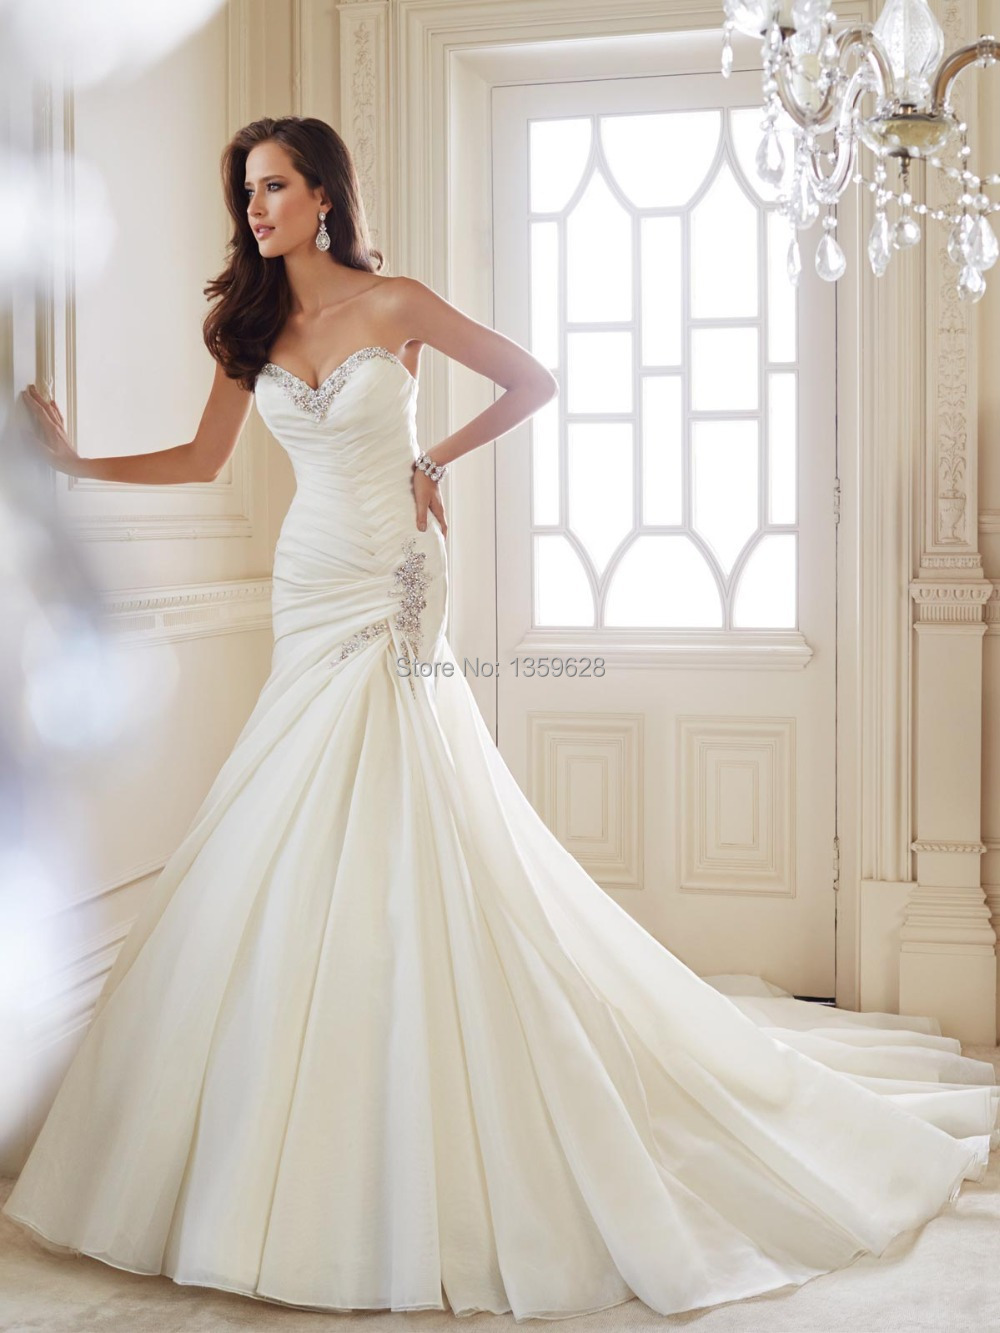 Vintage Mermaid Wedding Dress 2017 Stunning Delicate Sweetheart Ruched Elongated Bodice Traditional Organza Wd 157 In Dresses From